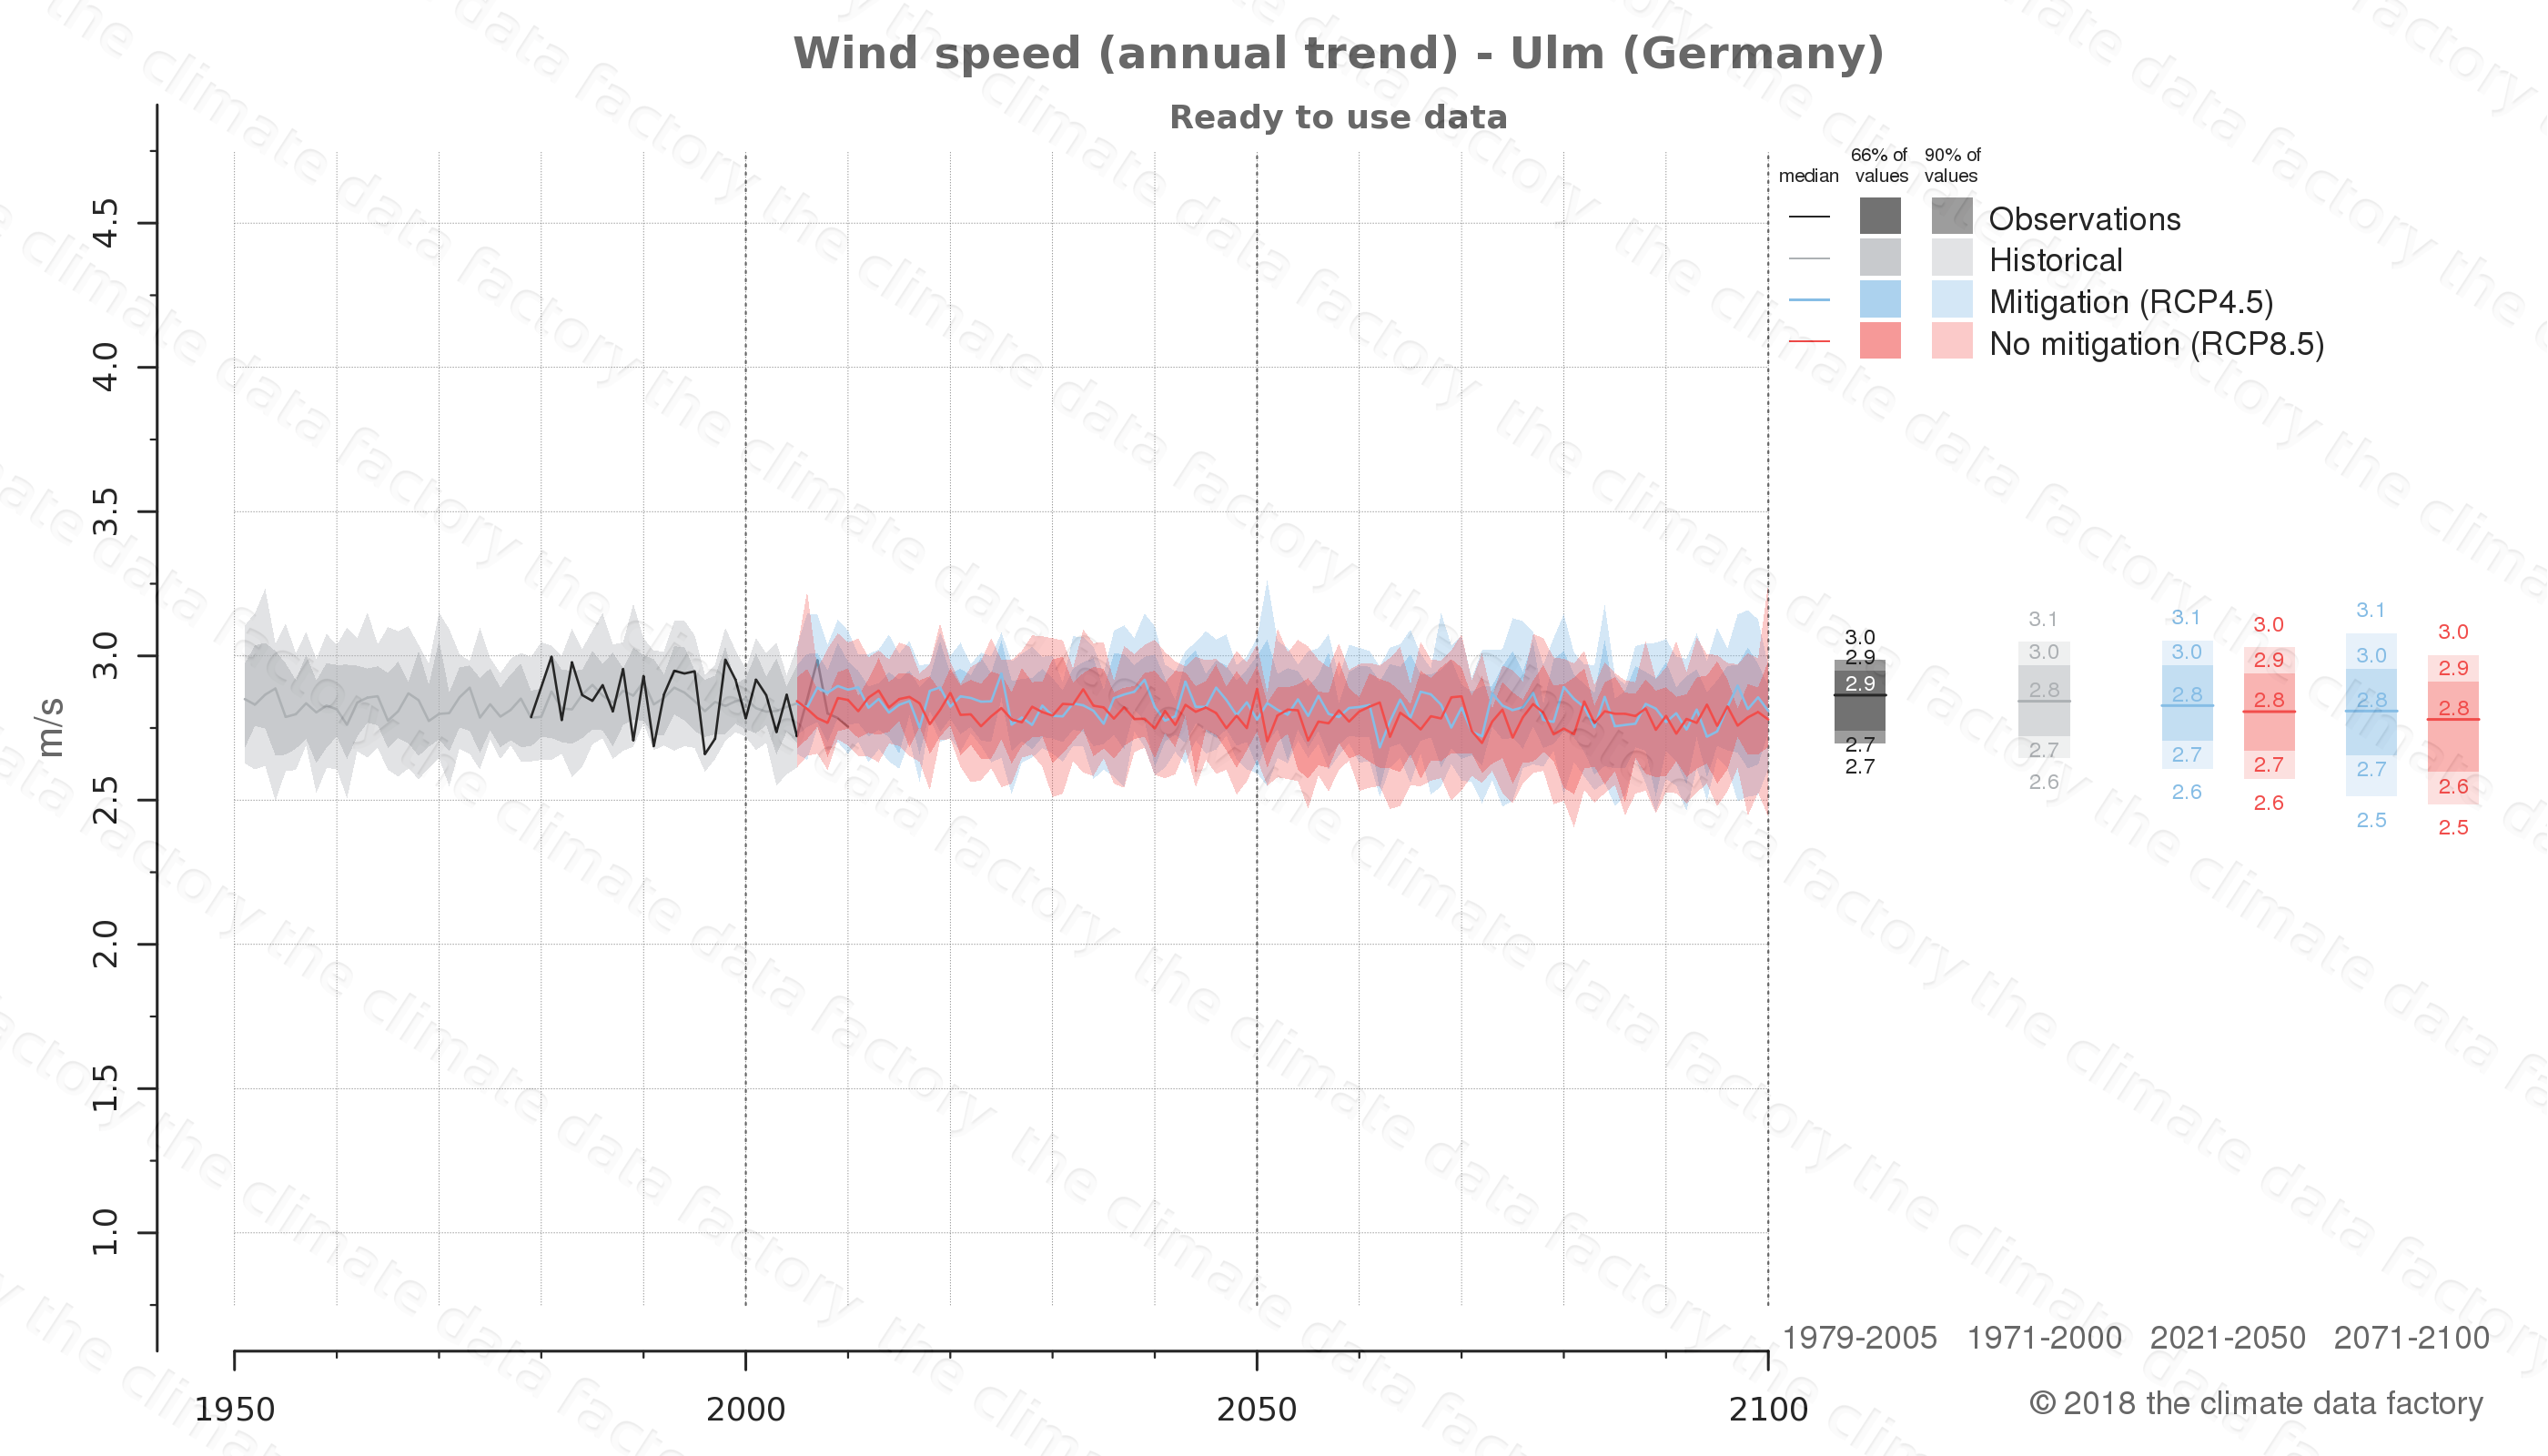 climate change data policy adaptation climate graph city data wind-speed ulm germany